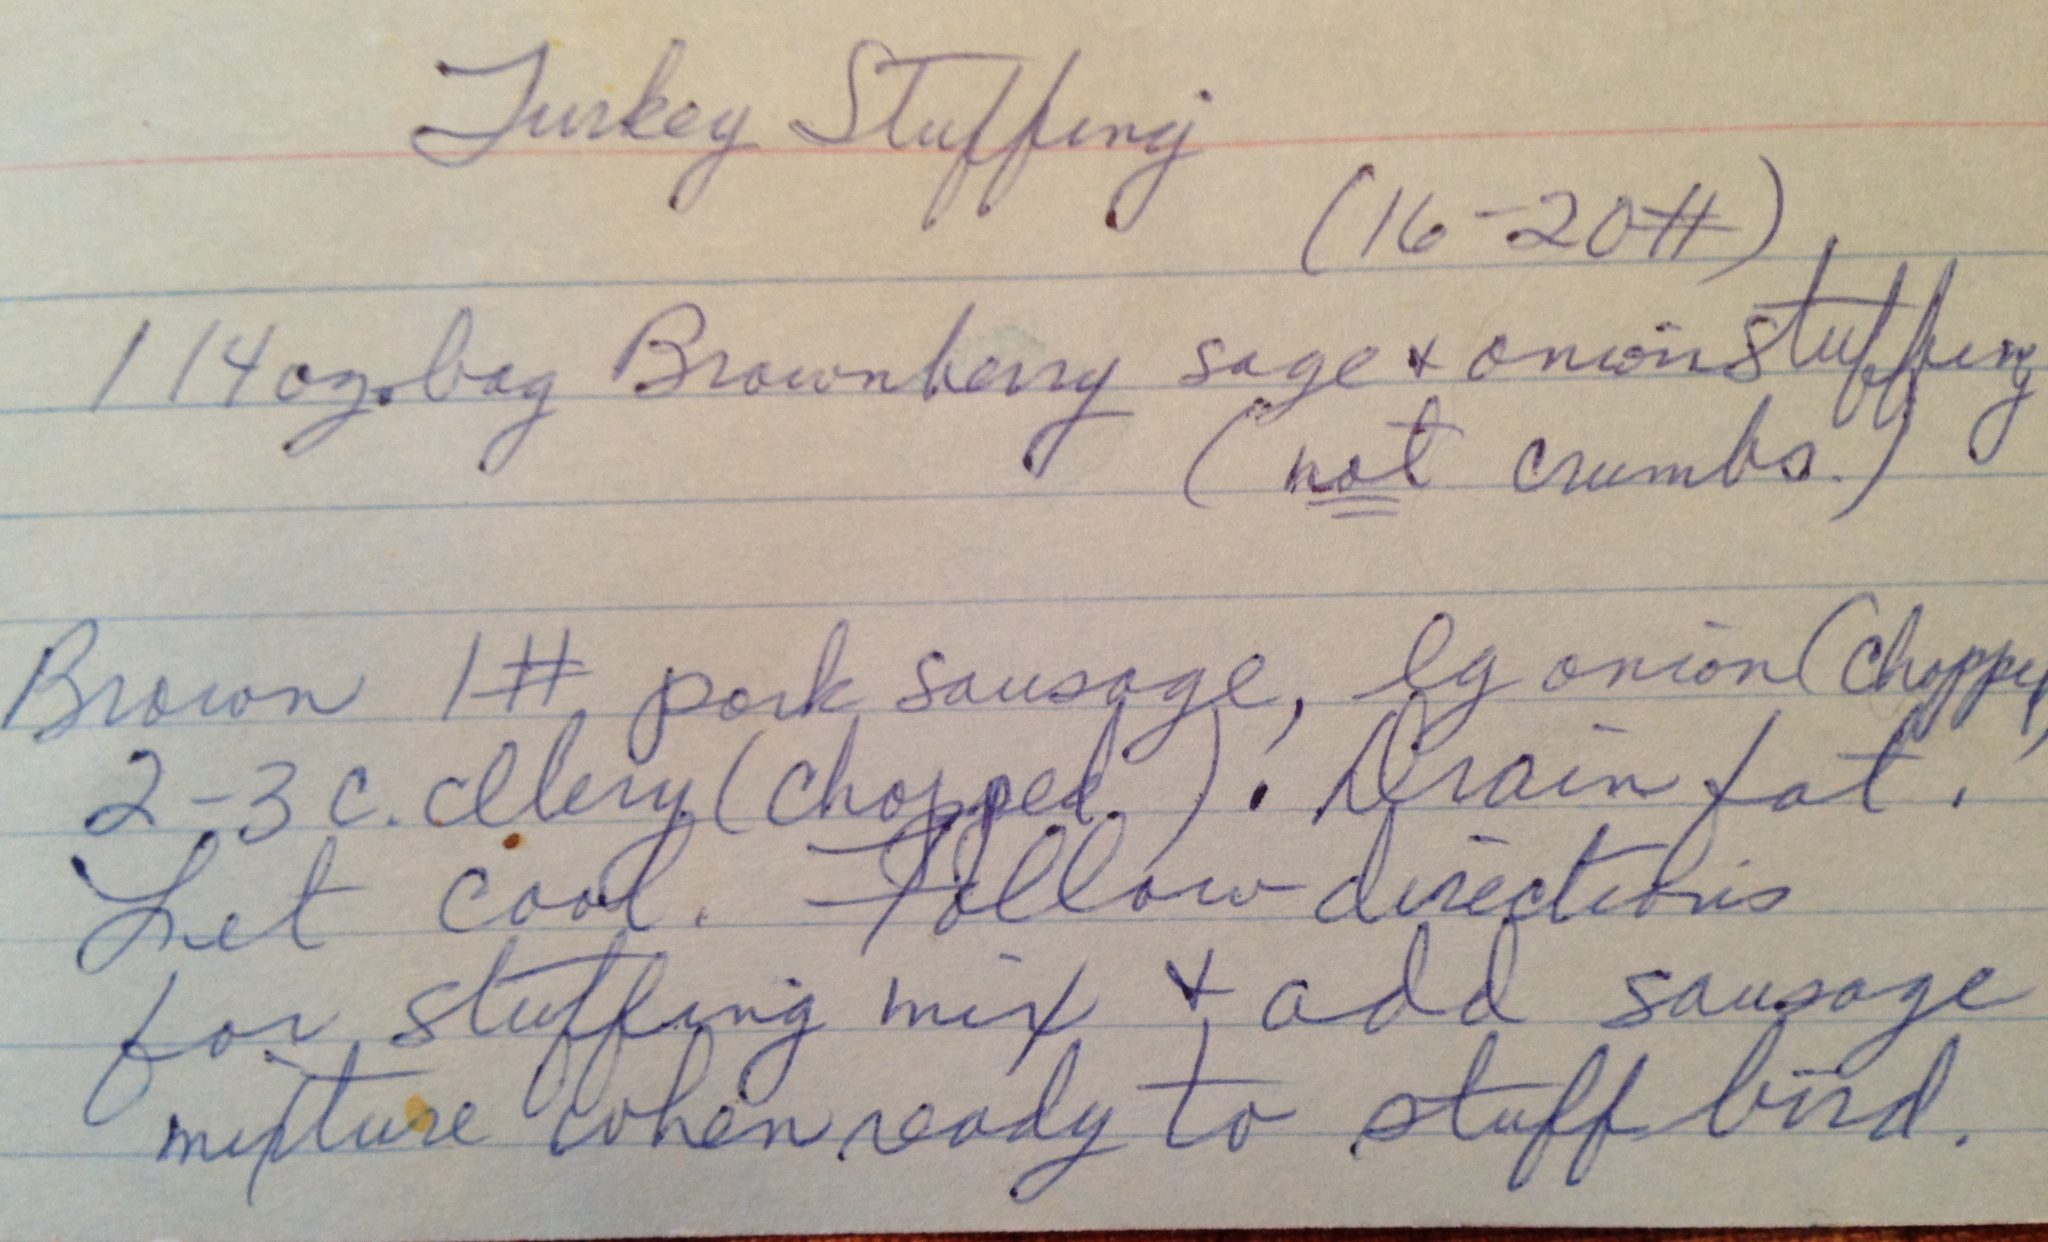 recipe for Thanksgiving stuffing